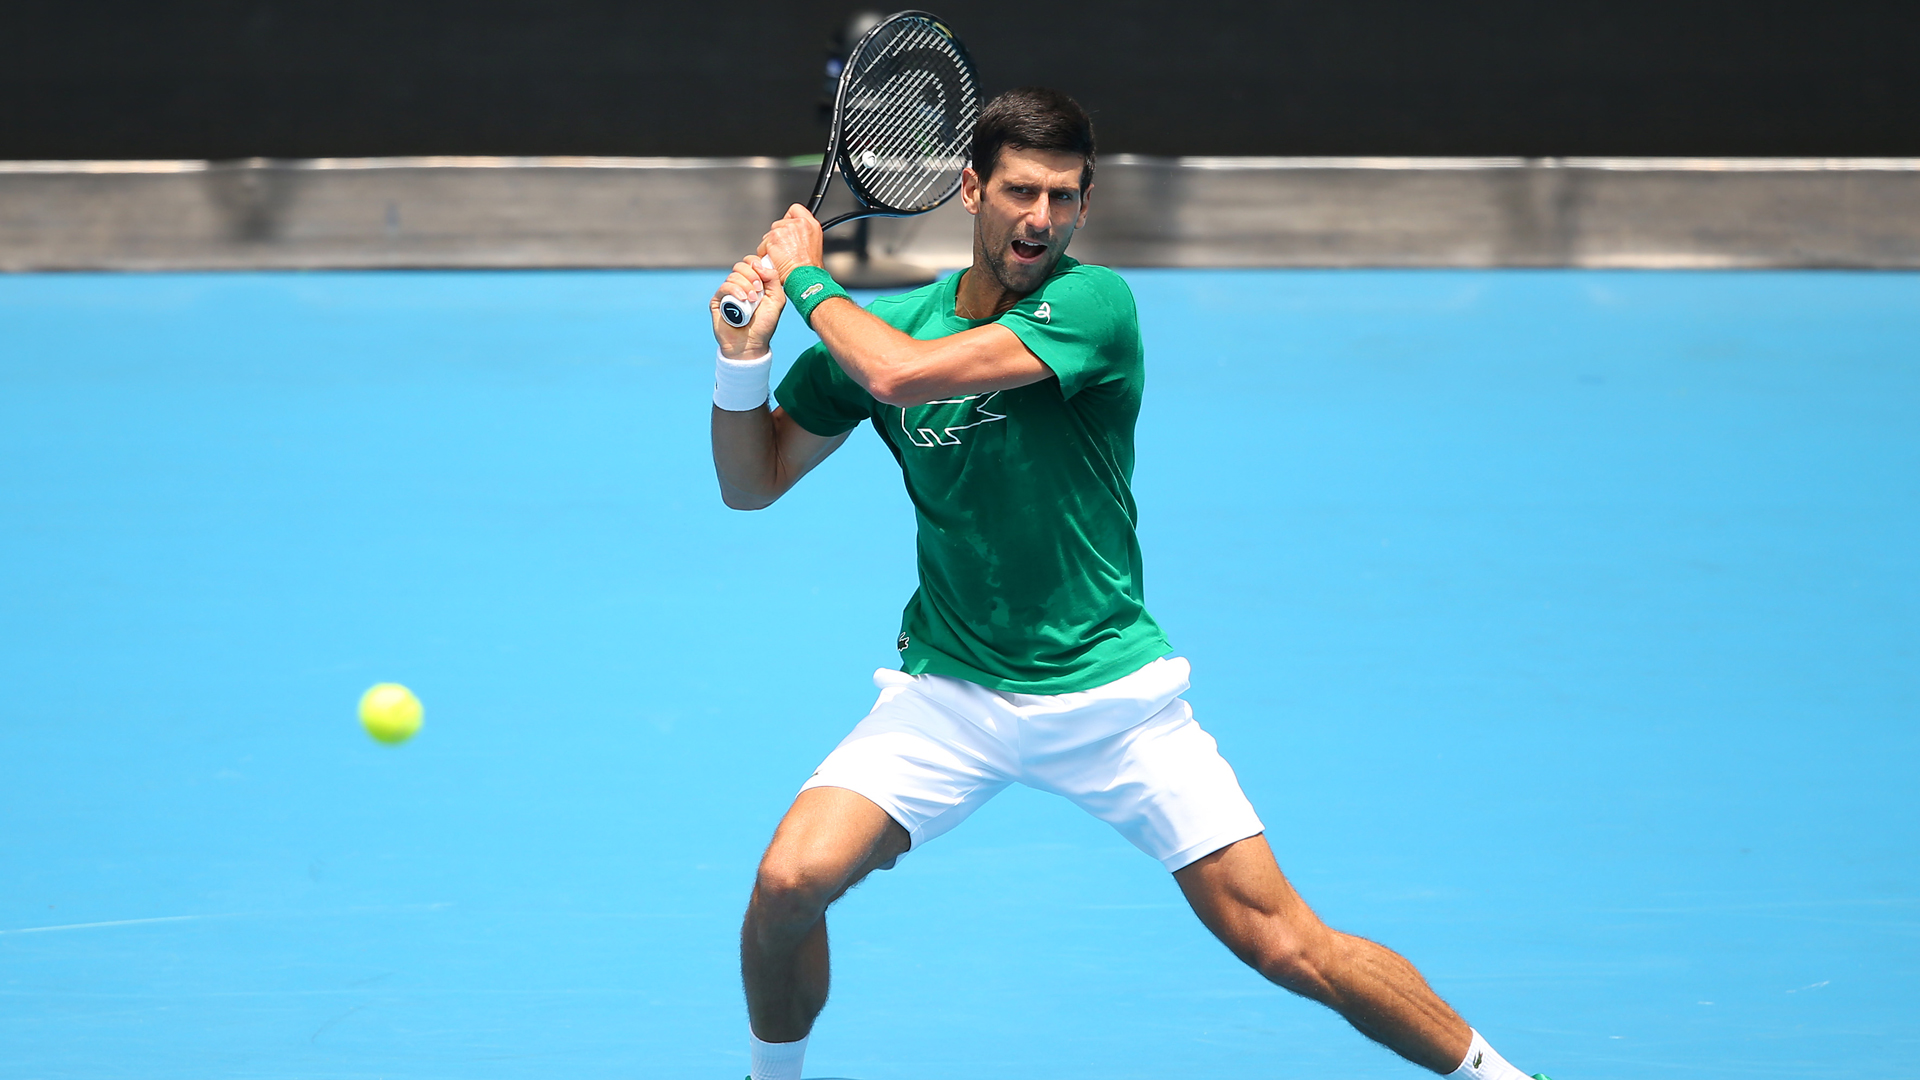 Australian Open 2020: Novak Djokovic results and form ahead of first-round match with Jan-Lennard Struff